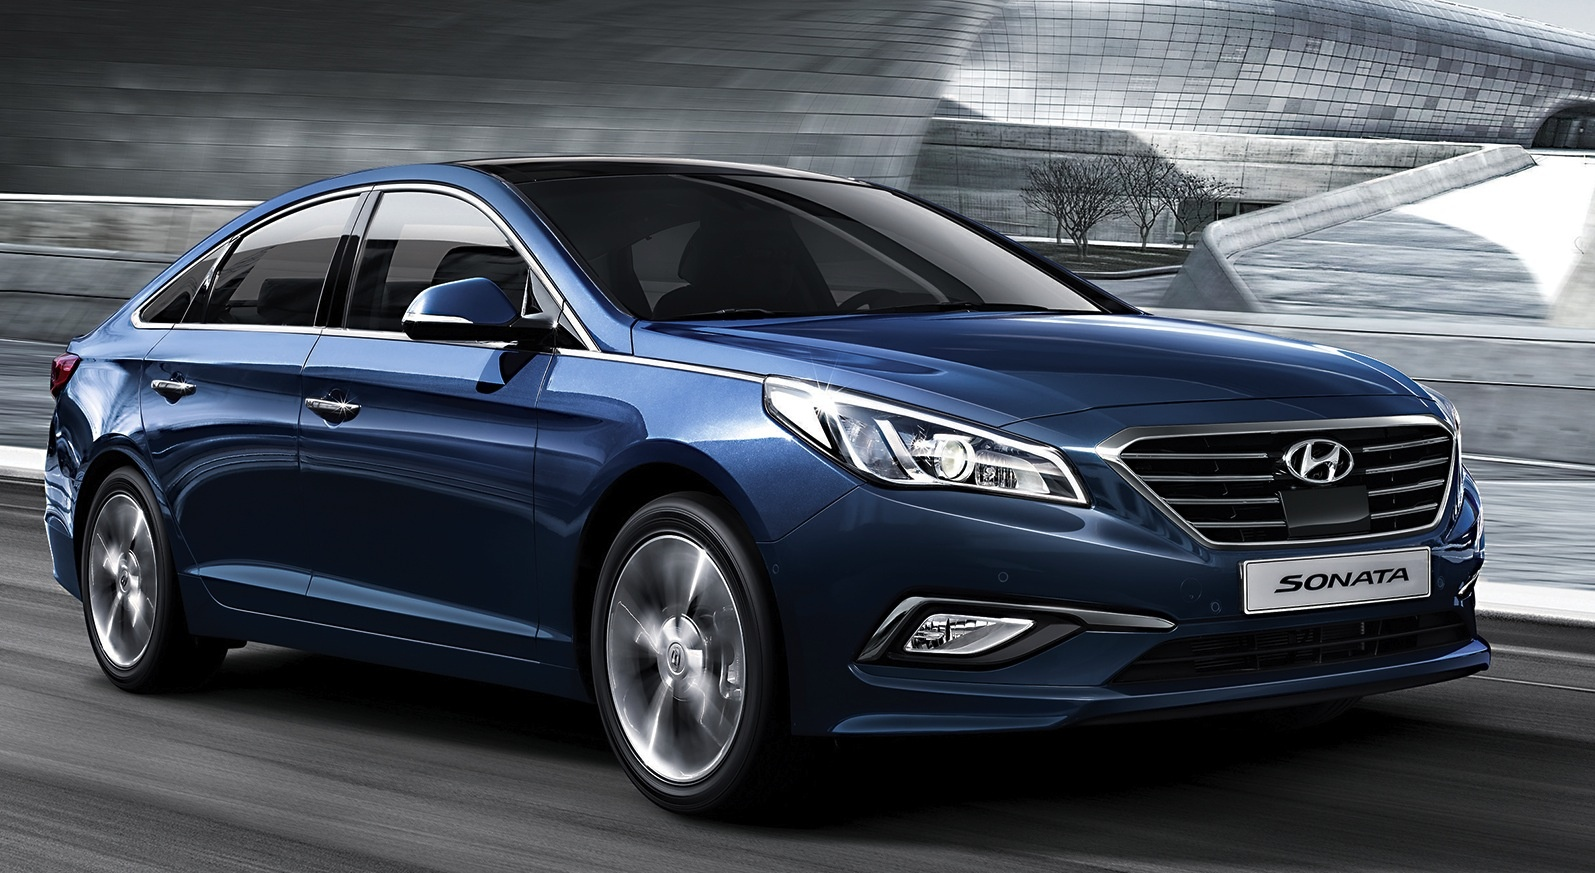 Pictures of hyundai sonata #6